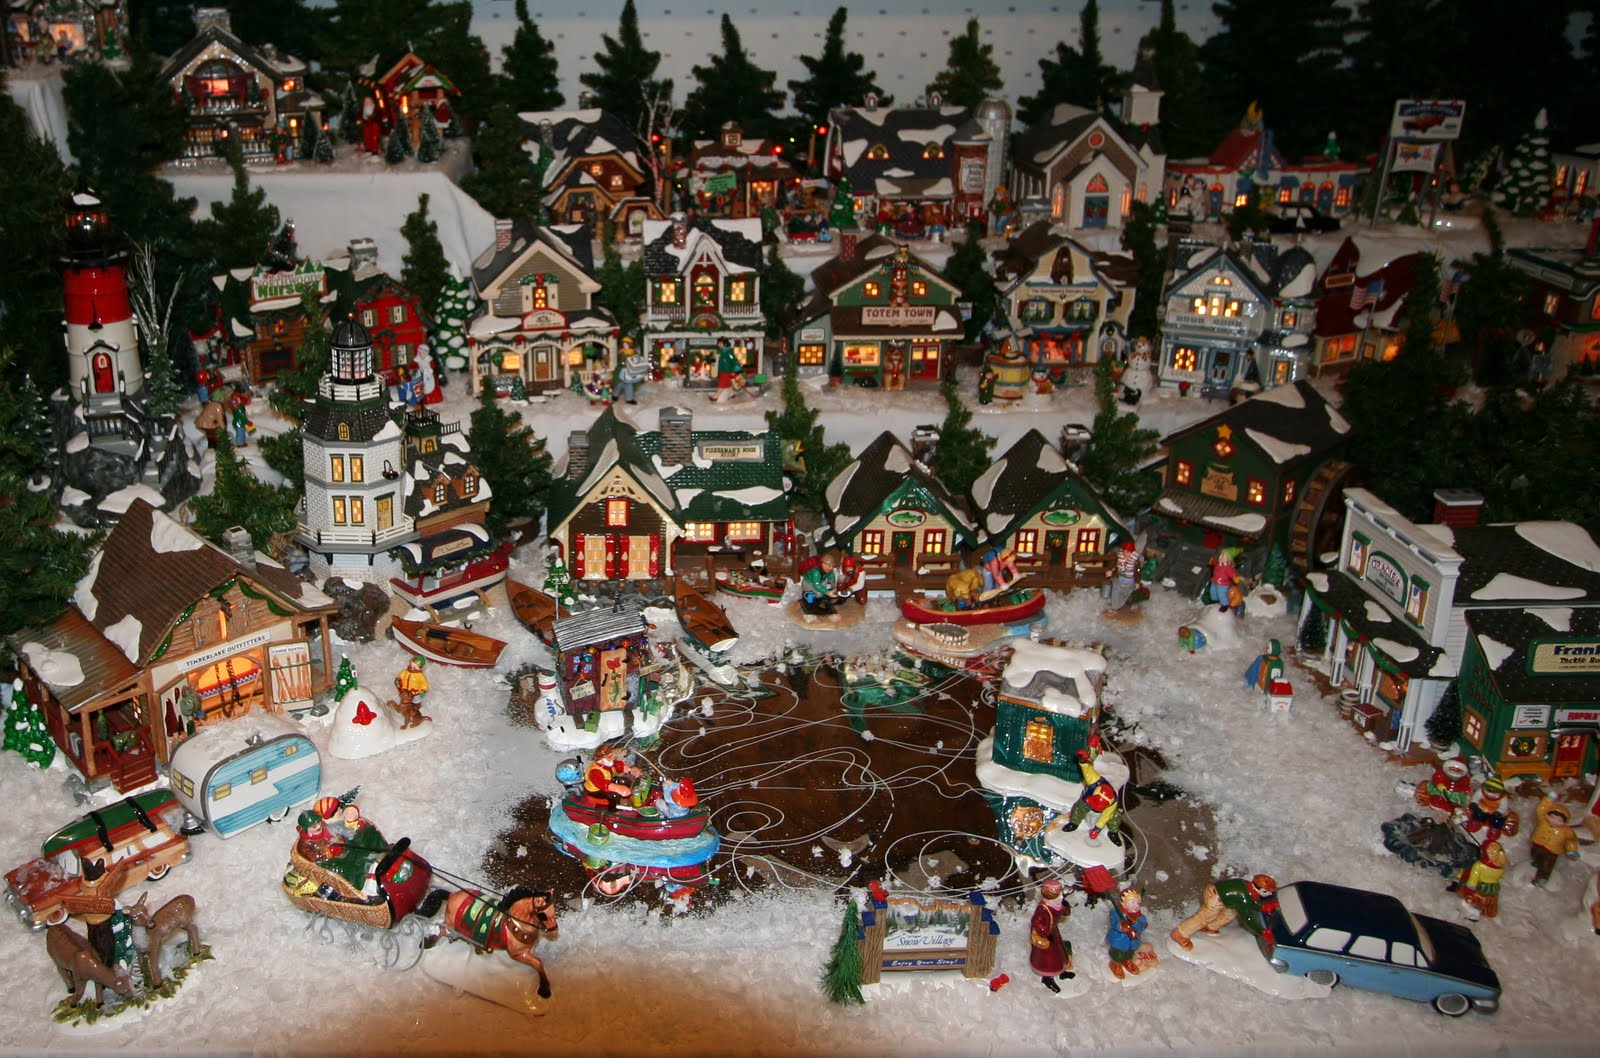 Home Design Image Ideas  miniature christmas village display ideas 9tTaTD6w